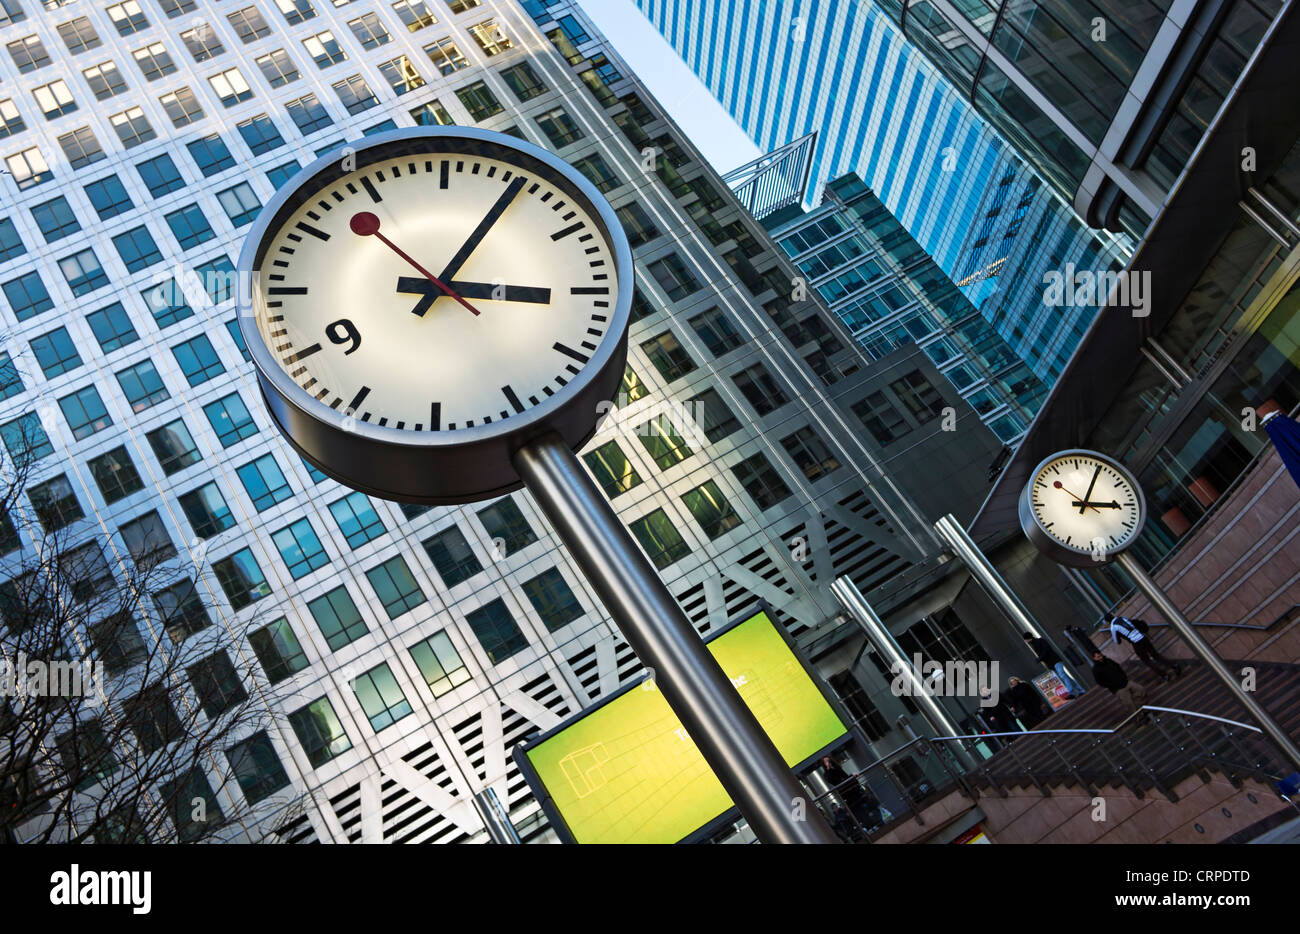 Six Public Clocks by Konstantin Grcic, based on the iconic Swiss railway clock. The clocks have become an iconic - Stock Image